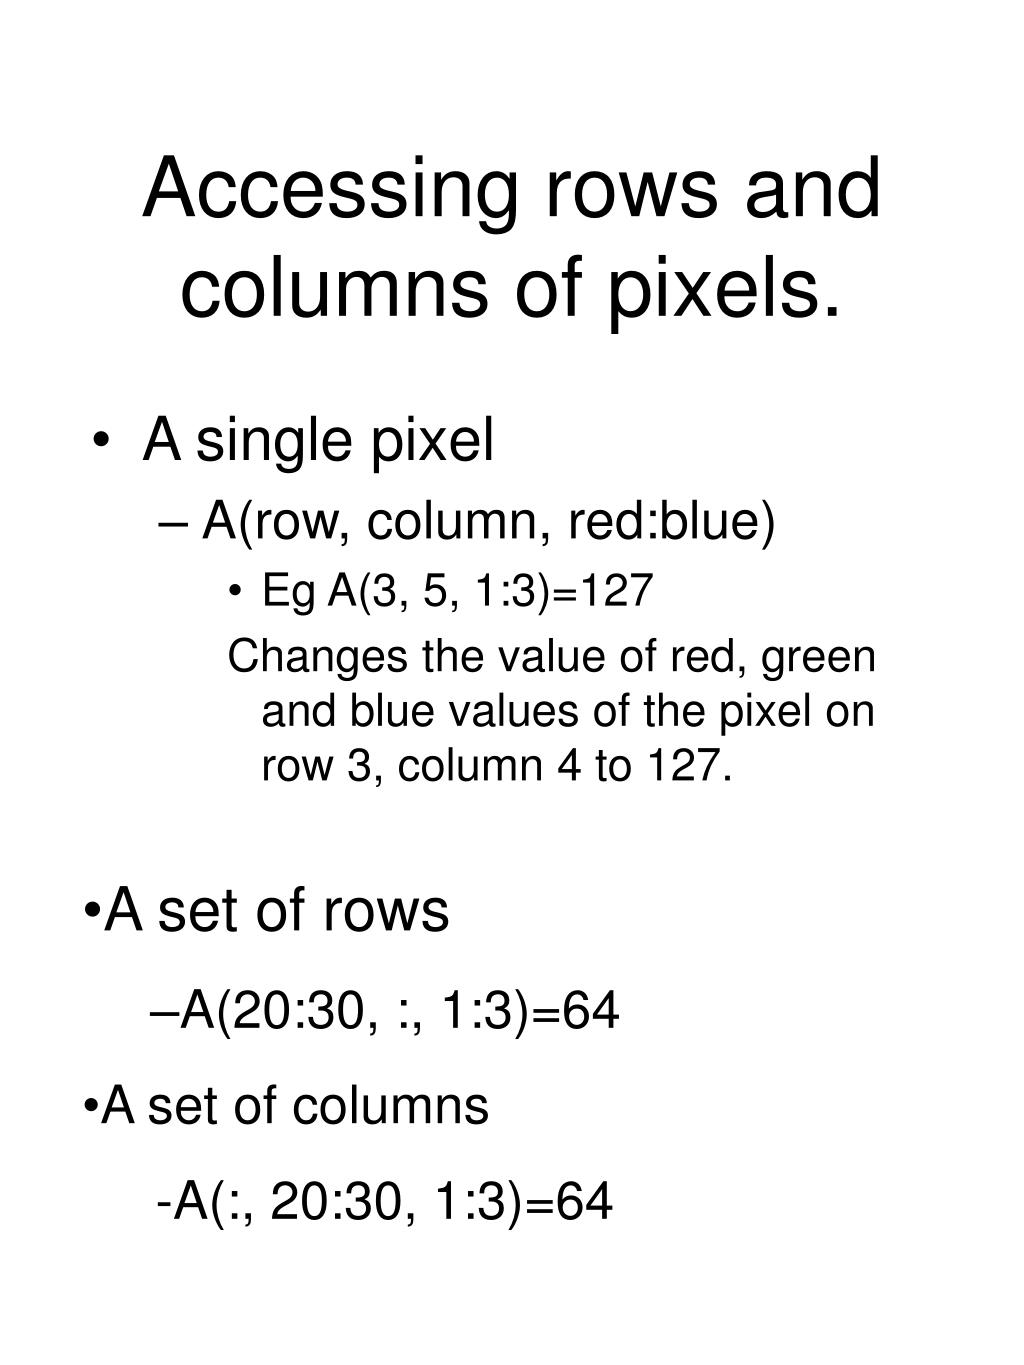 Accessing rows and columns of pixels.